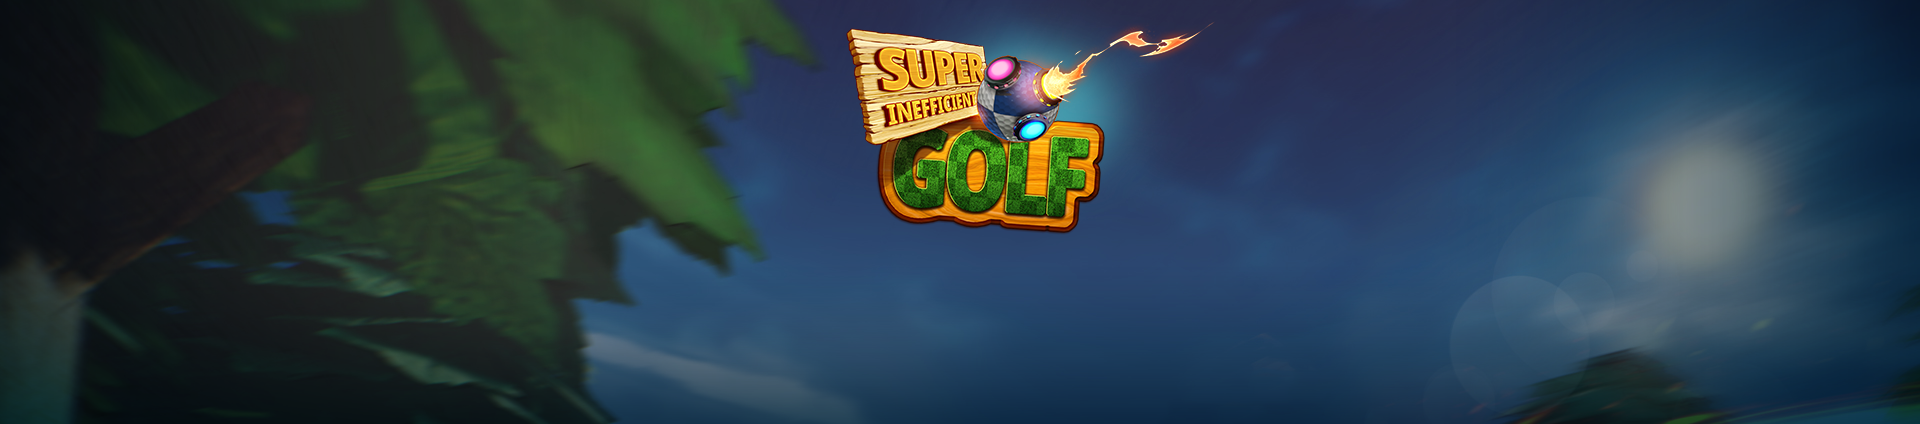 super inefficient golf banner